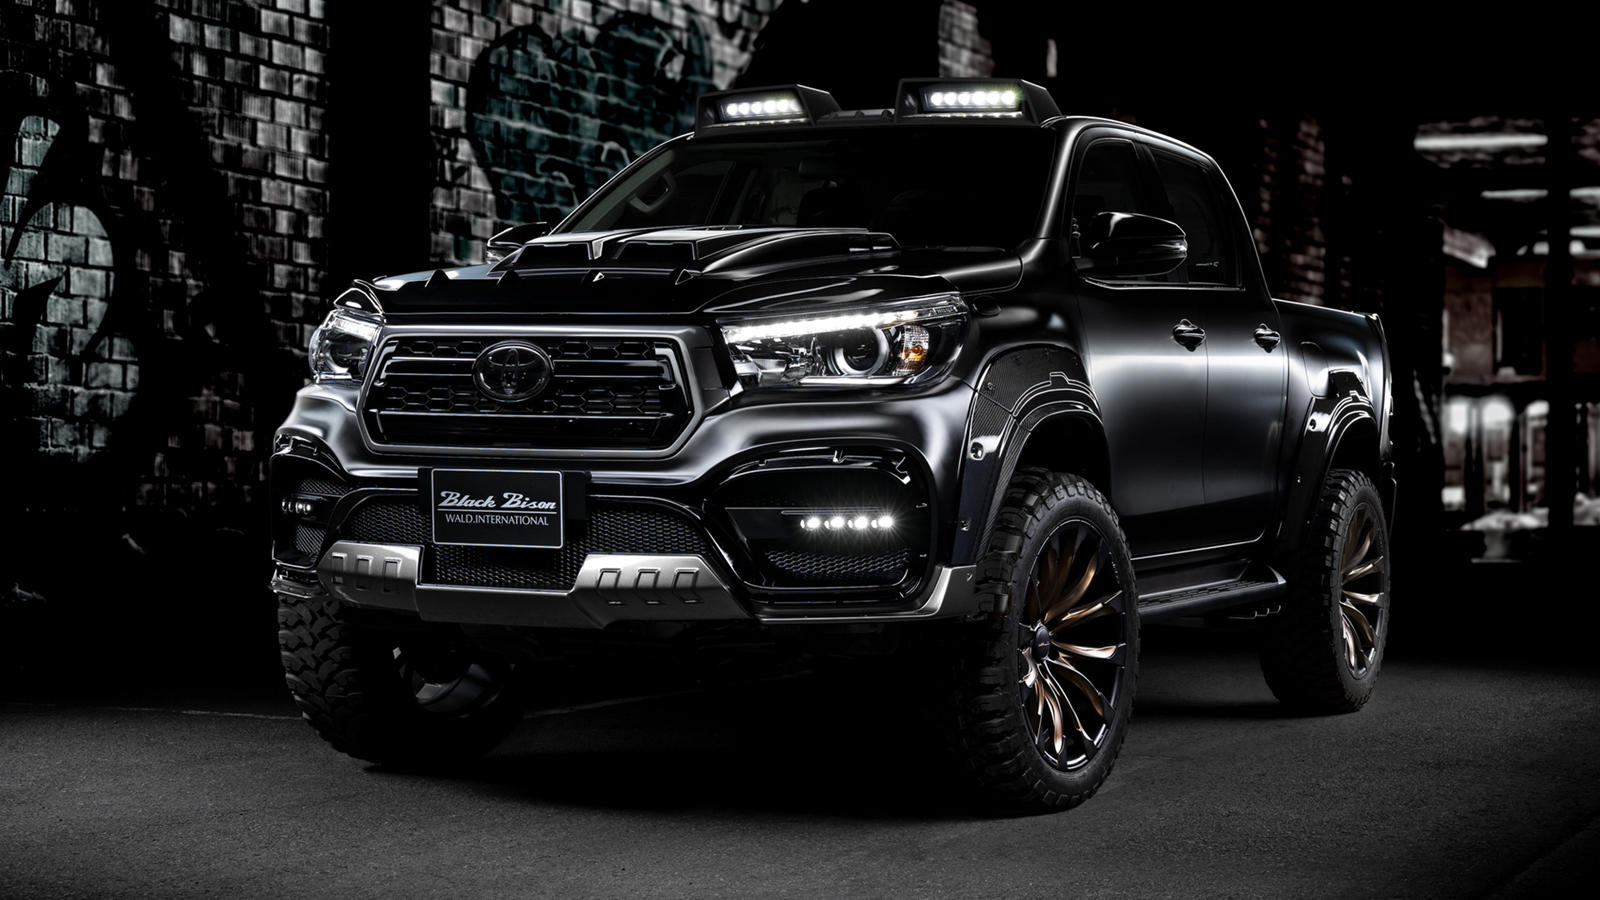 Carbuzz A Twitter Black Bison Toyota Is The Ford Ranger S Worst Nightmare This Is The Ford Ranger Raptor Rival Toyota Needs To Build Trucks Tuning Read Https T Co Ejurve8may Https T Co Epbwlj1w0z